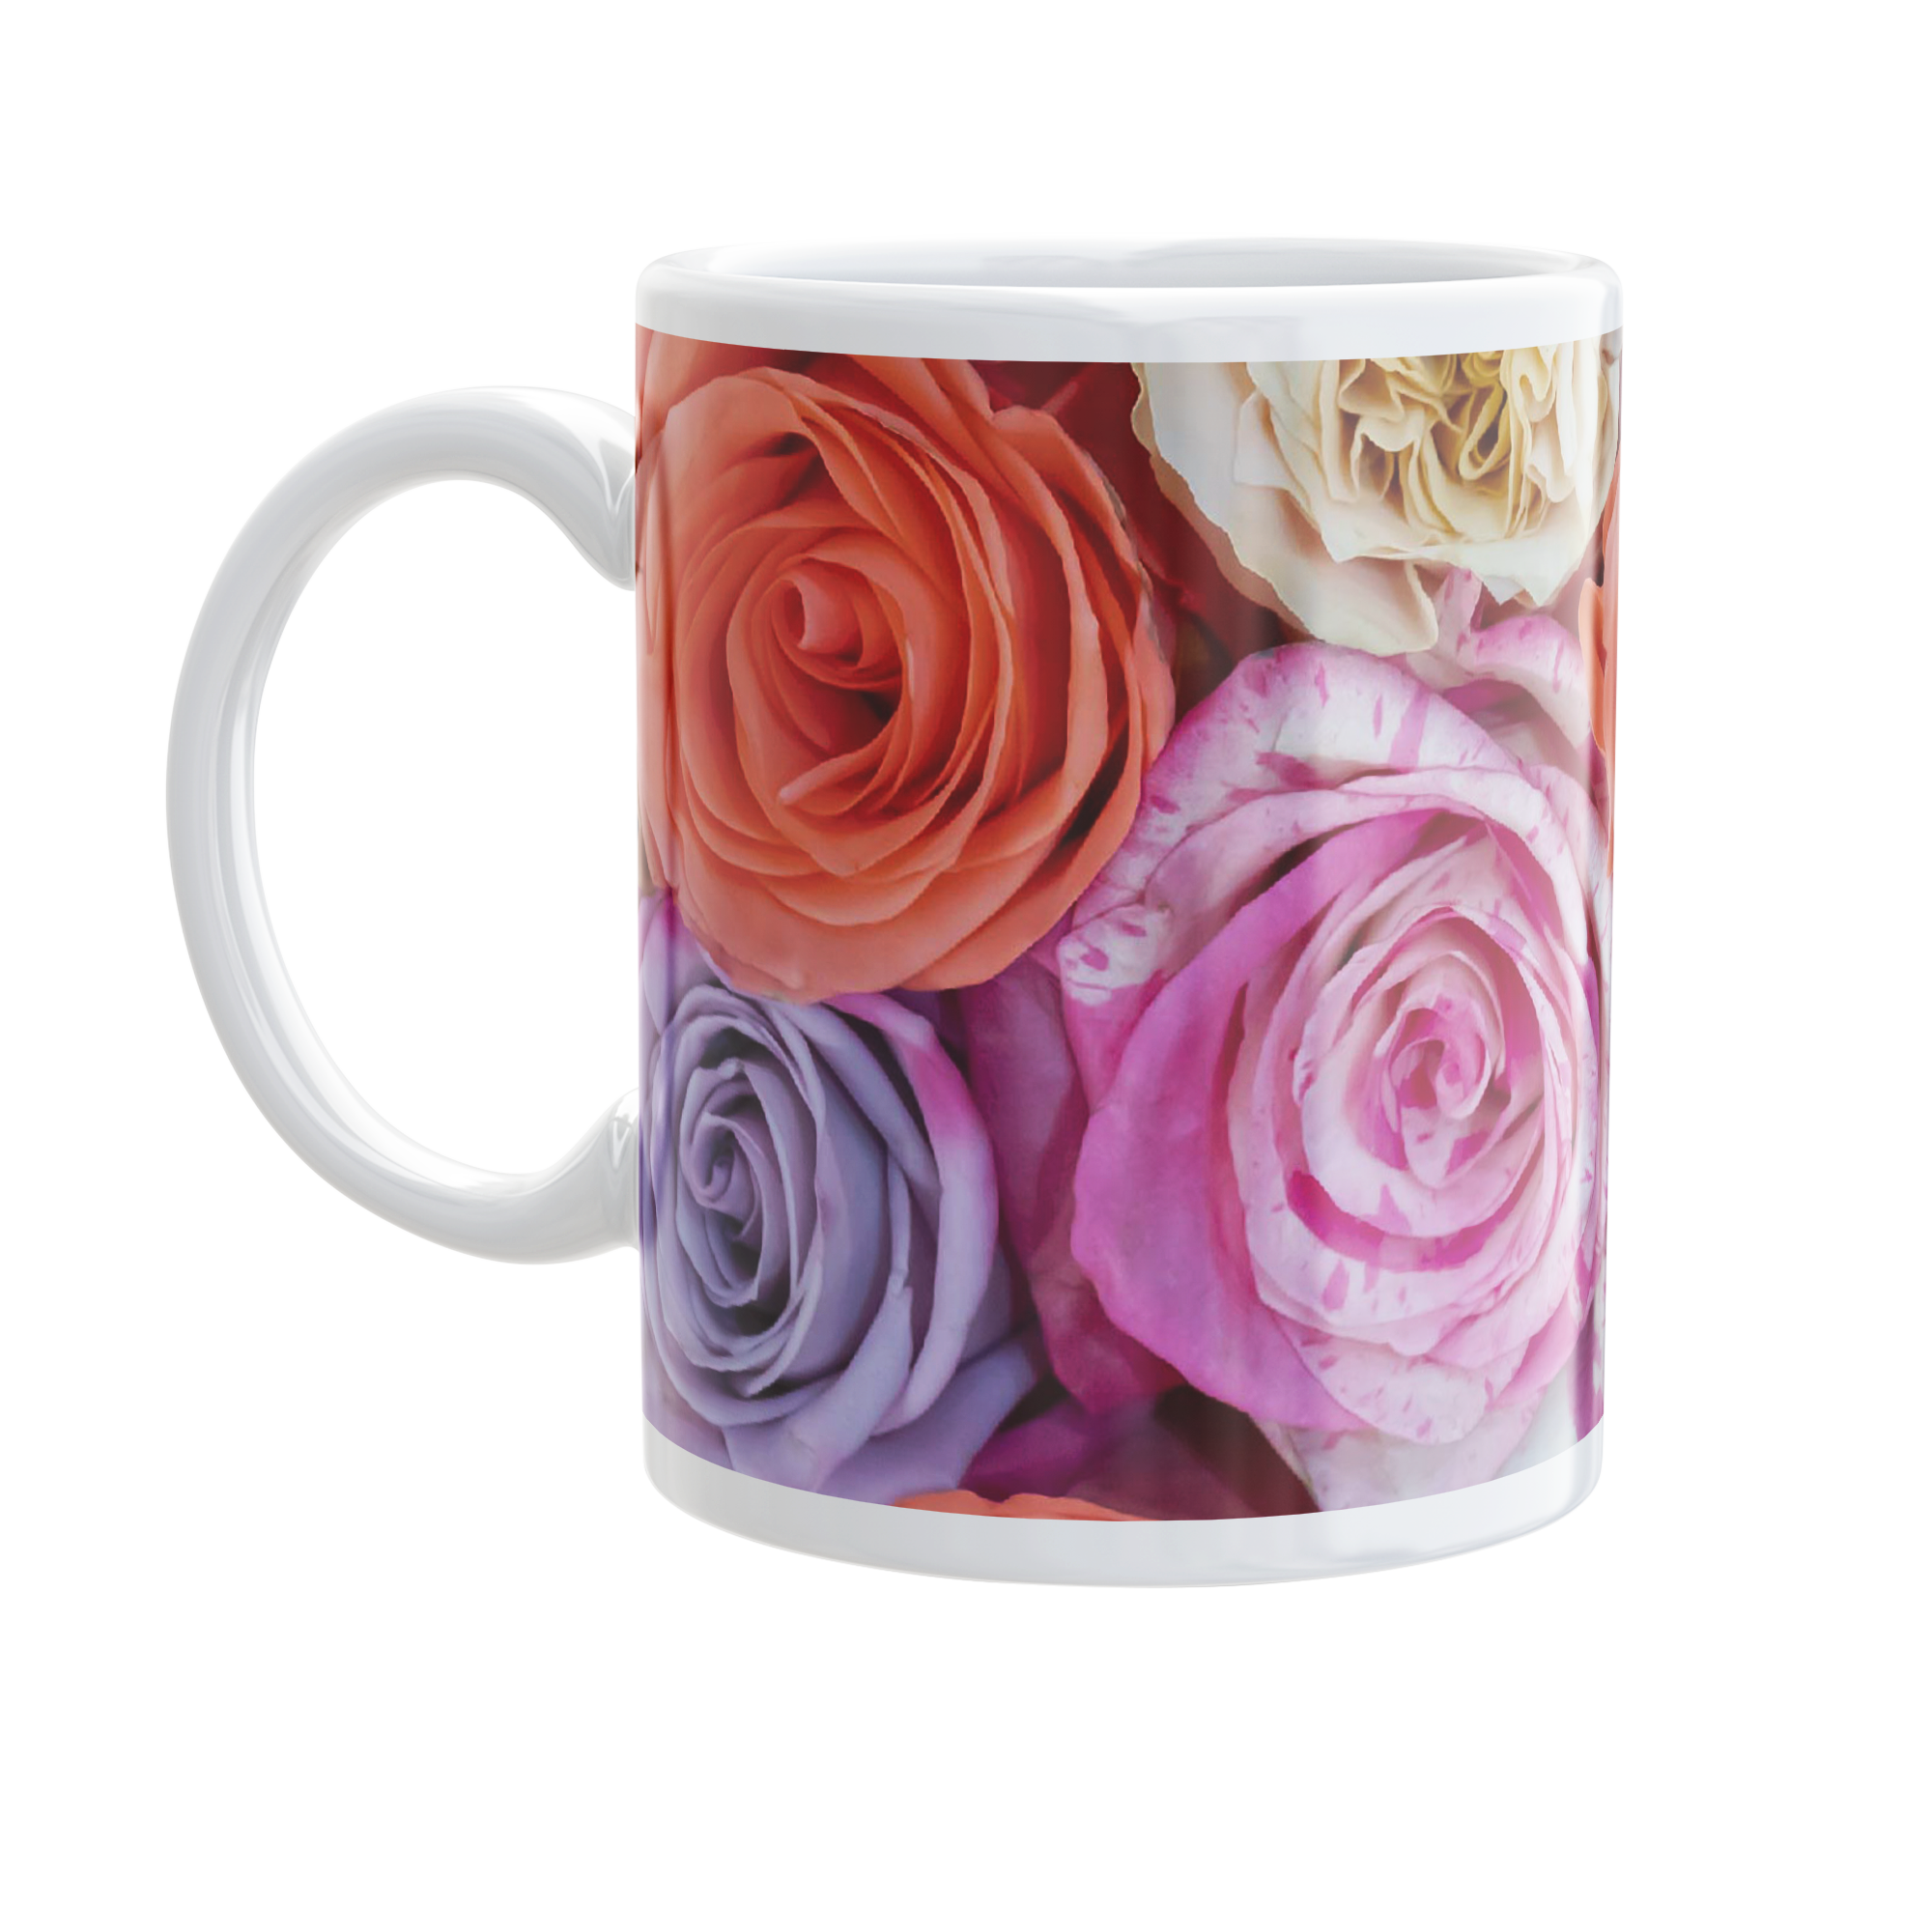 Tazza Rose multicolore